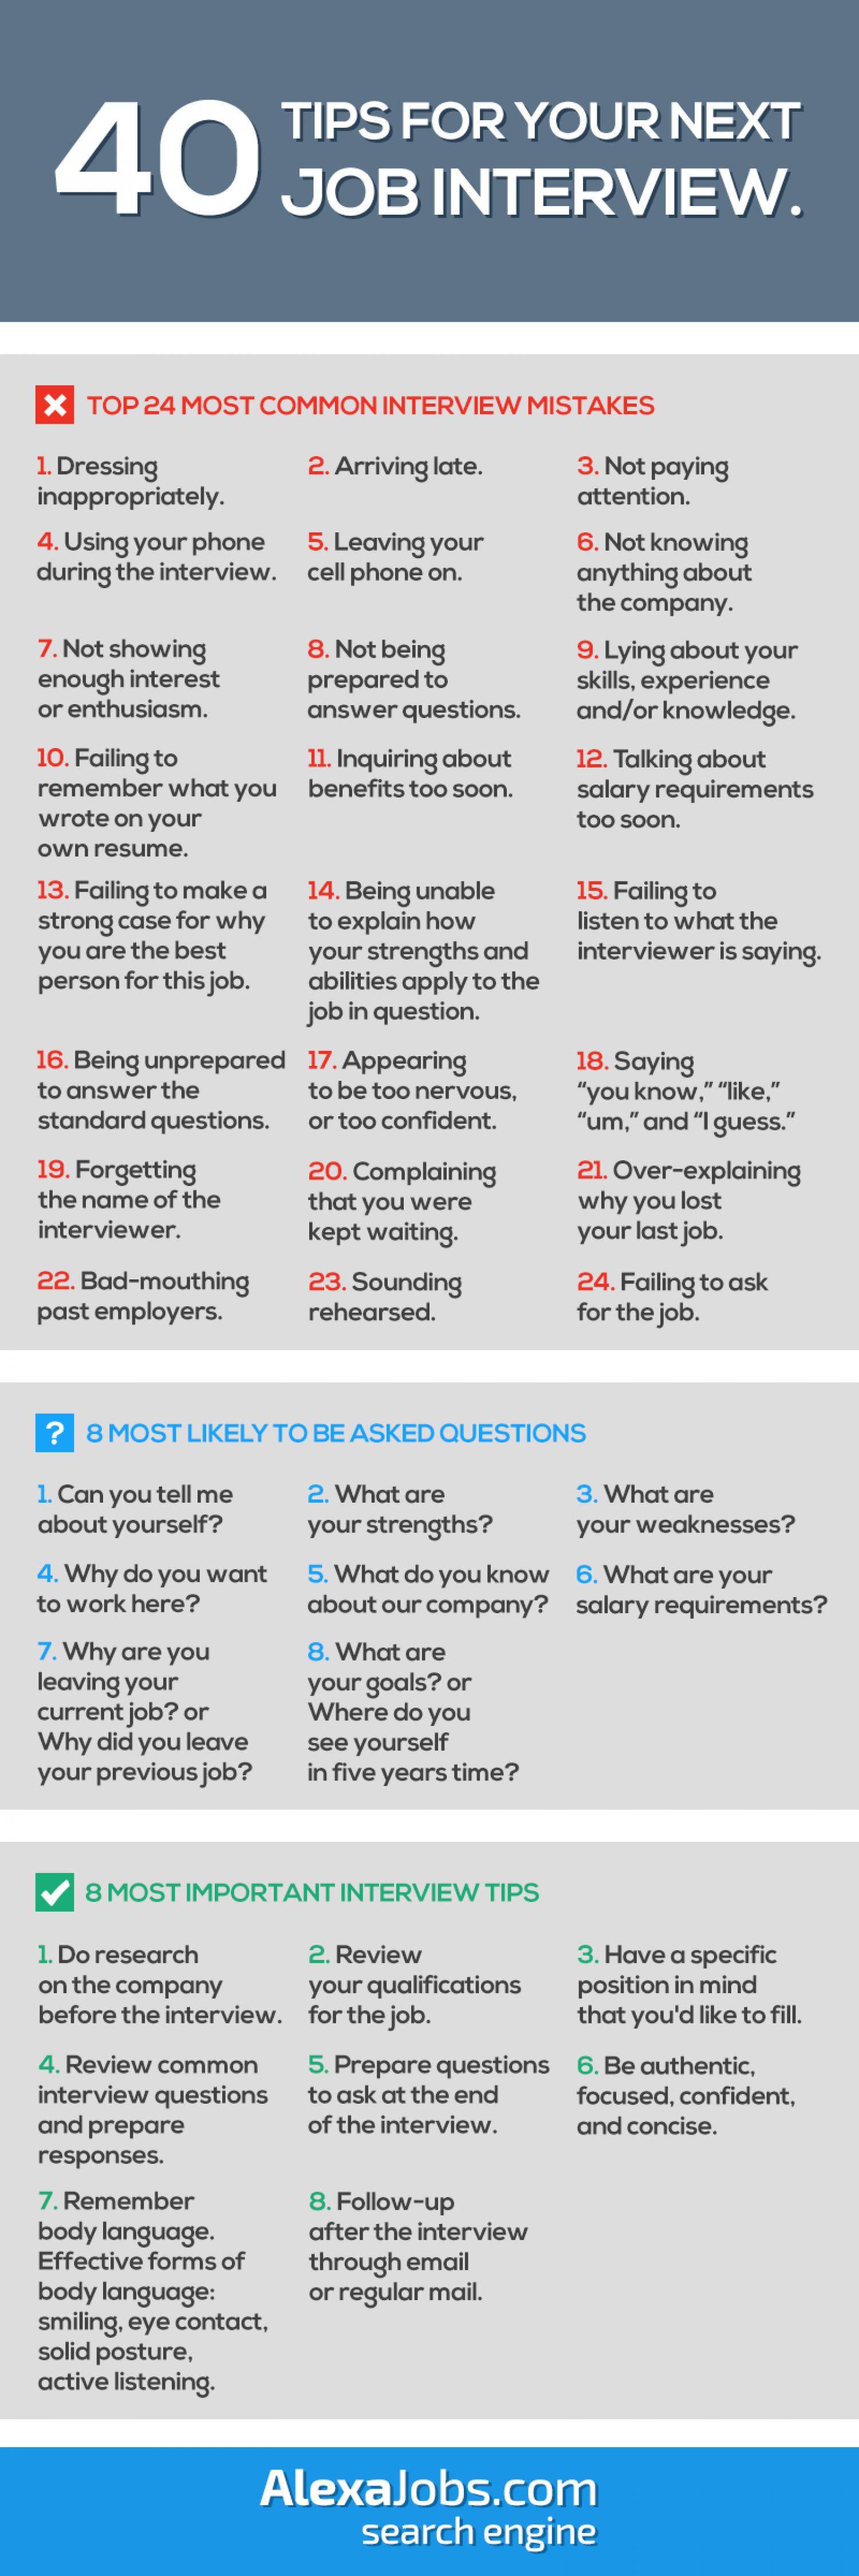 40 Tips For Your Next Job Interview